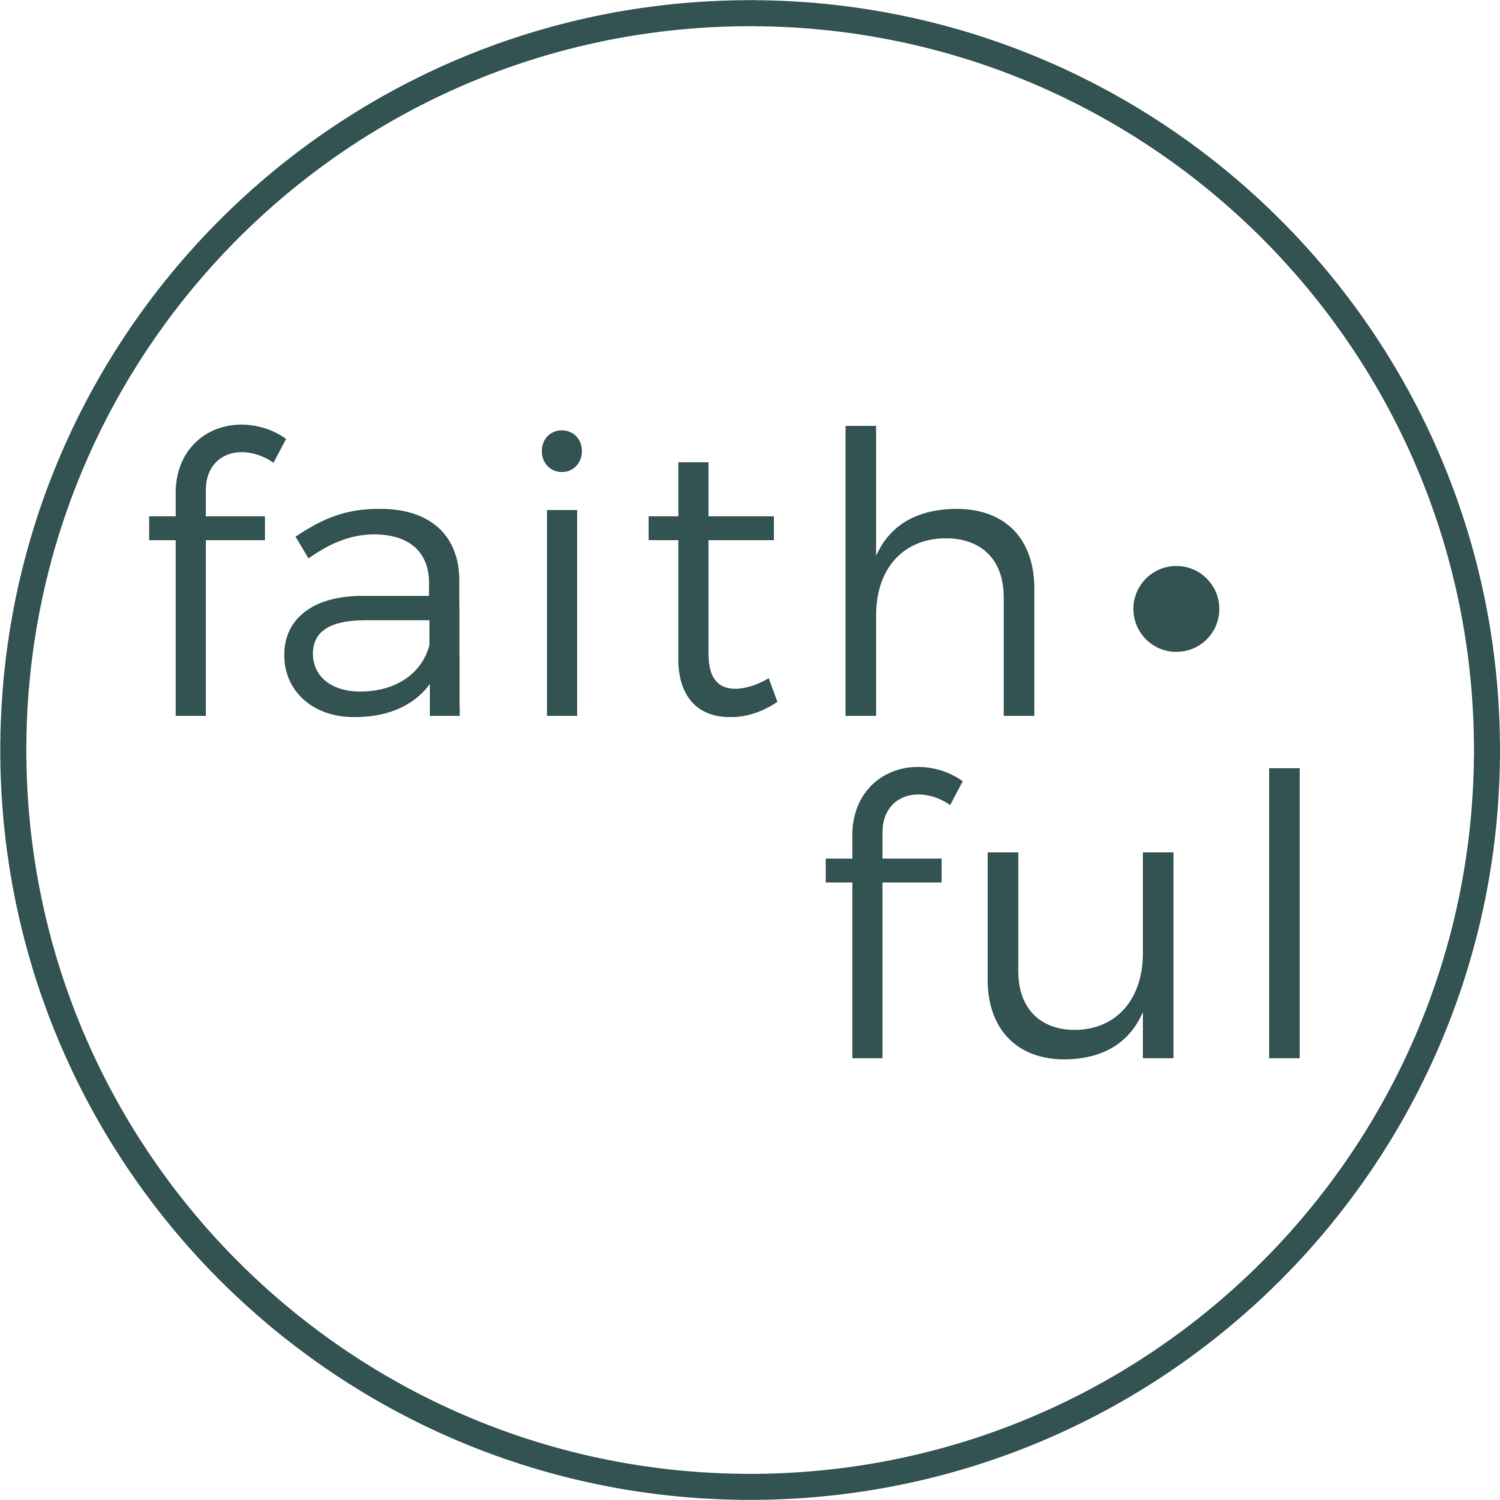 faithful conference